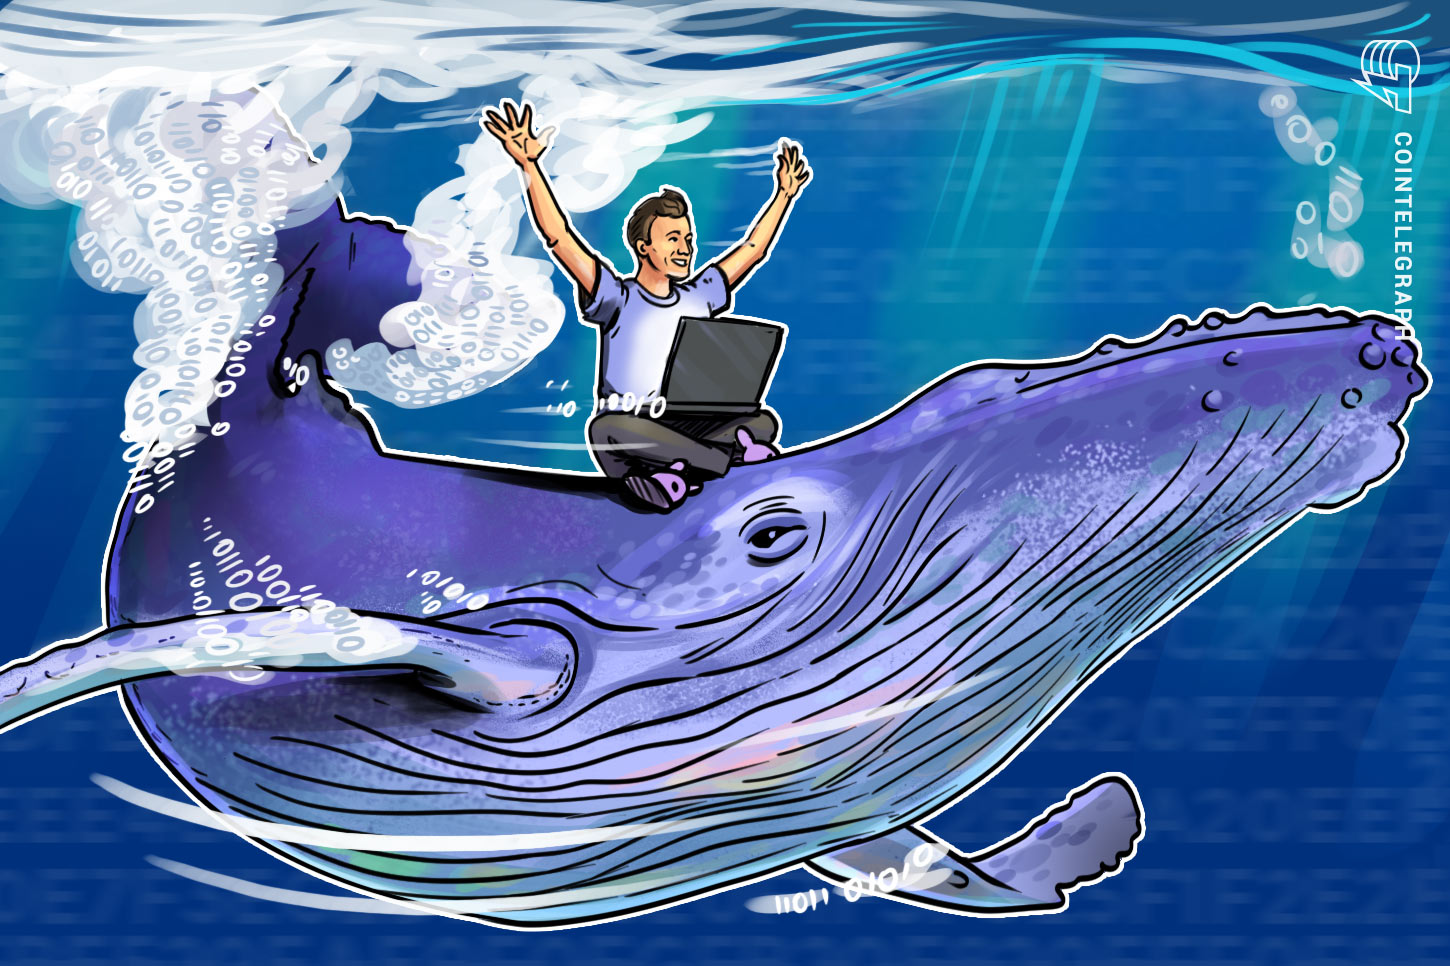 Bitcoin whales selling to institutions as Grayscale adds 7,188 BTC in 24 hours